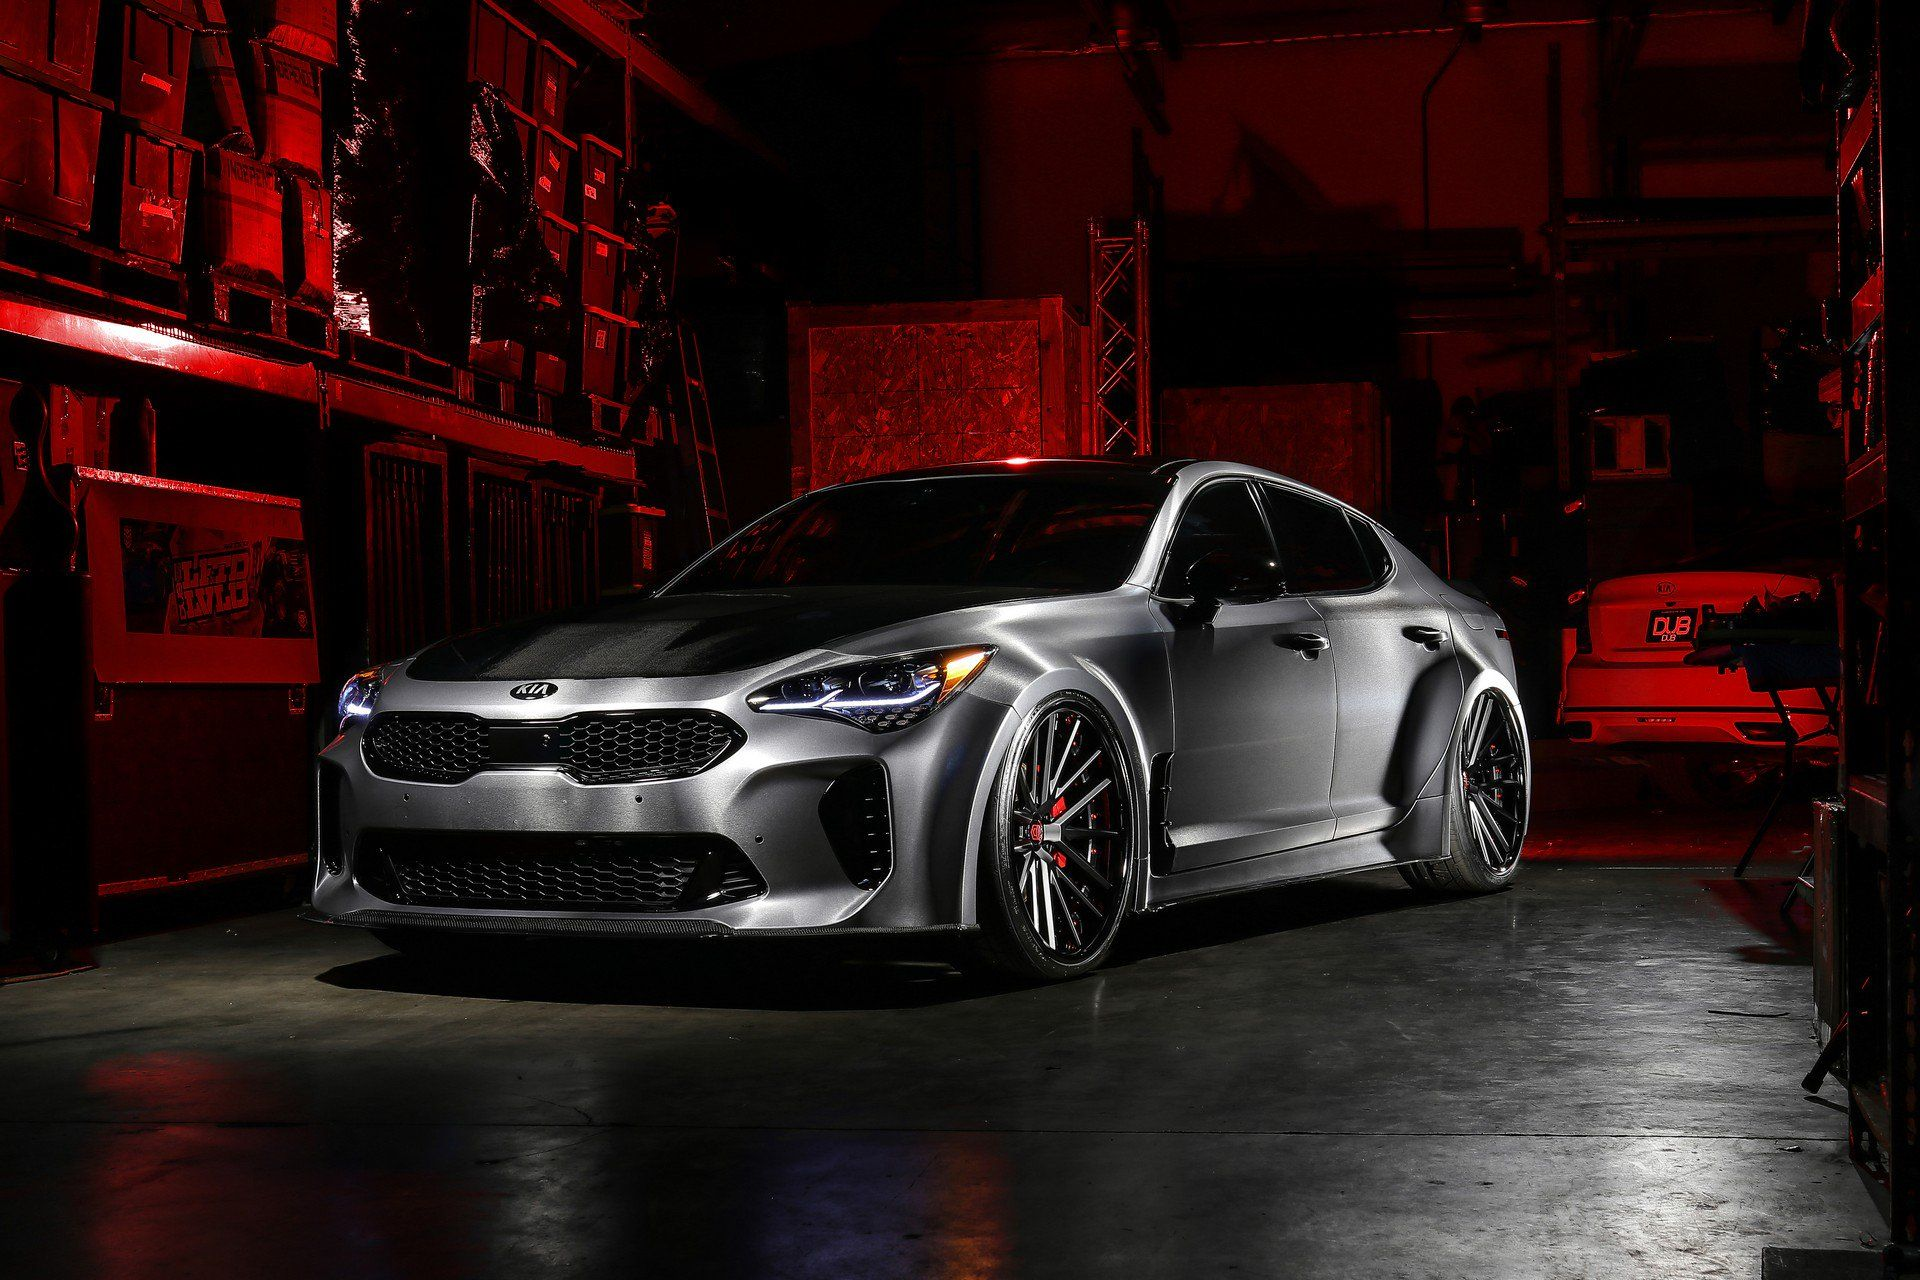 Kia Dubs Out At Sema With K900 And Stinger Gt Concepts Carscoops Kia Stinger Kia Kia Motors